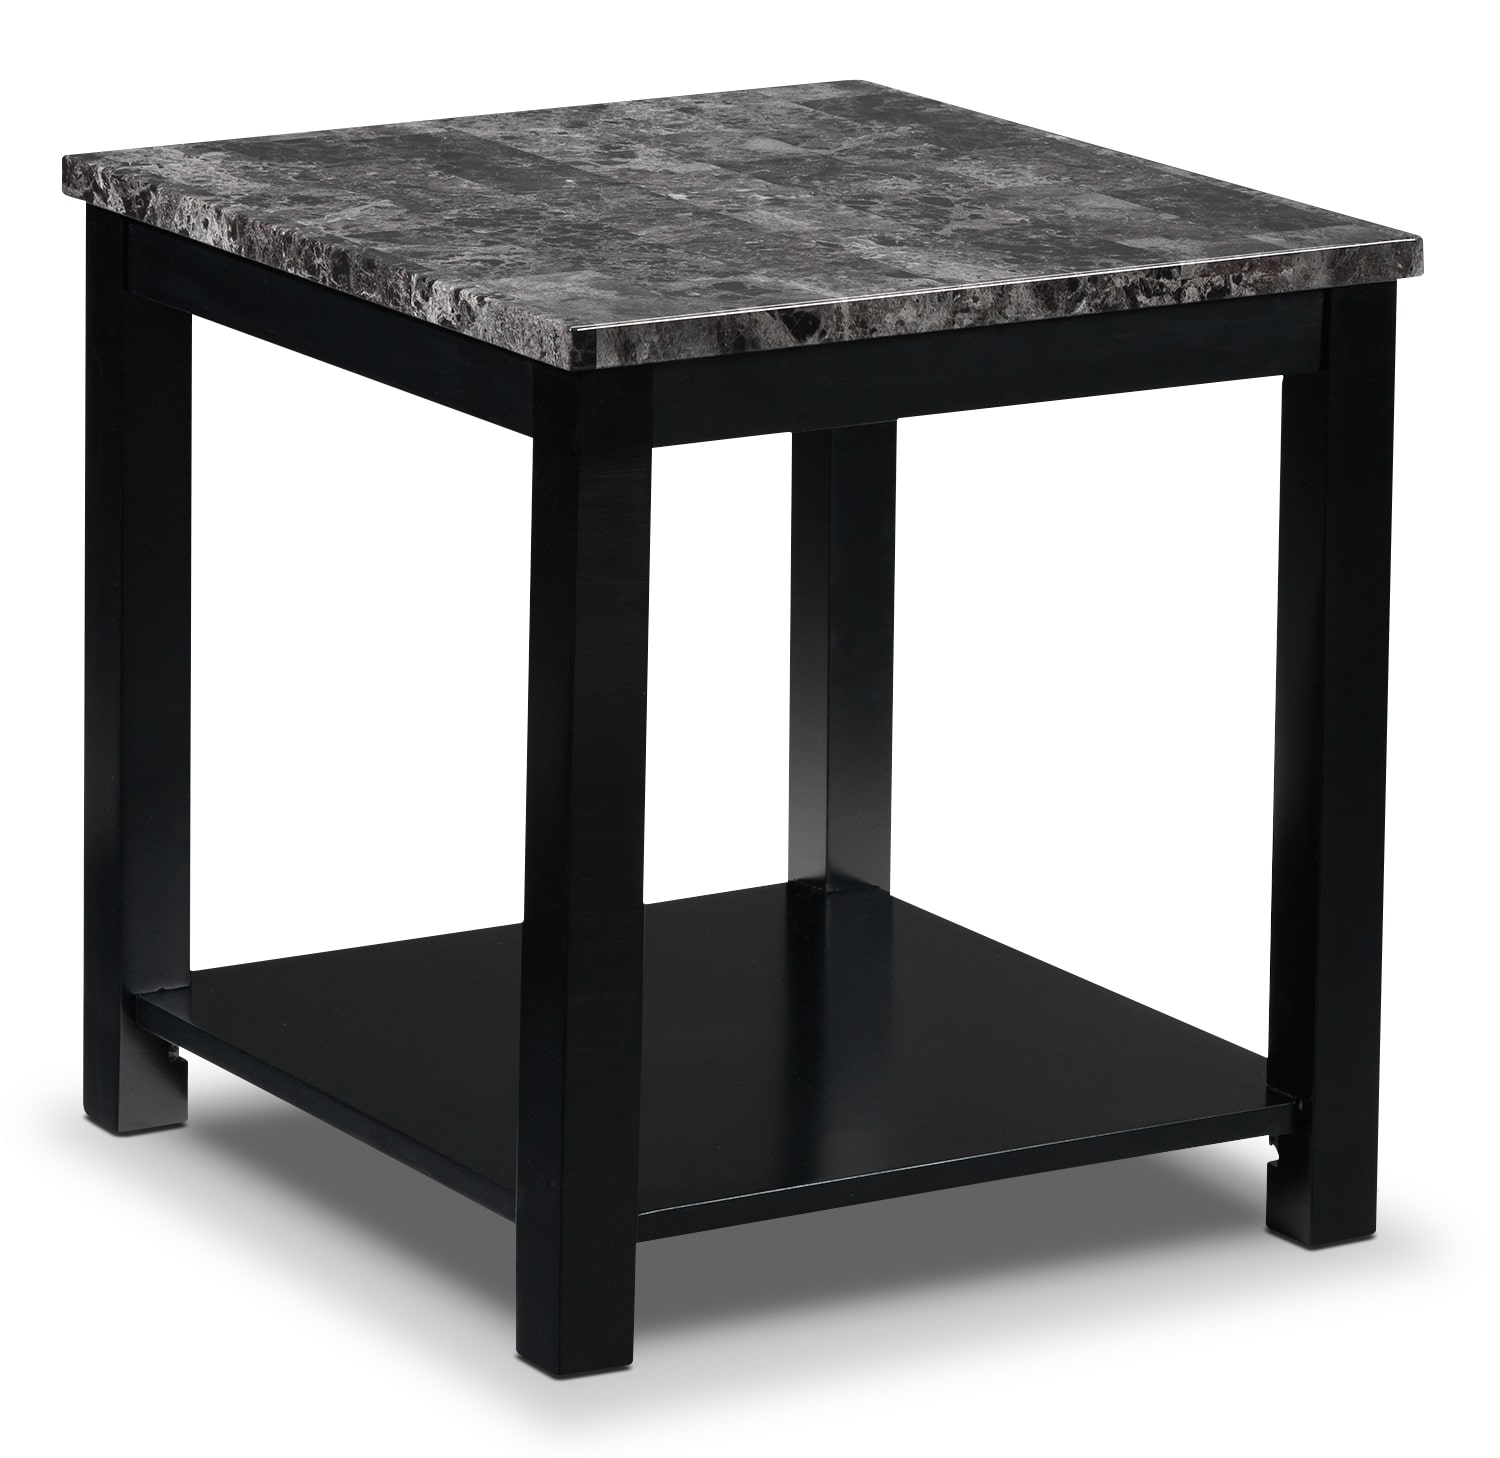 Black Marble Coffee Table Canada: Selena End Table - Black